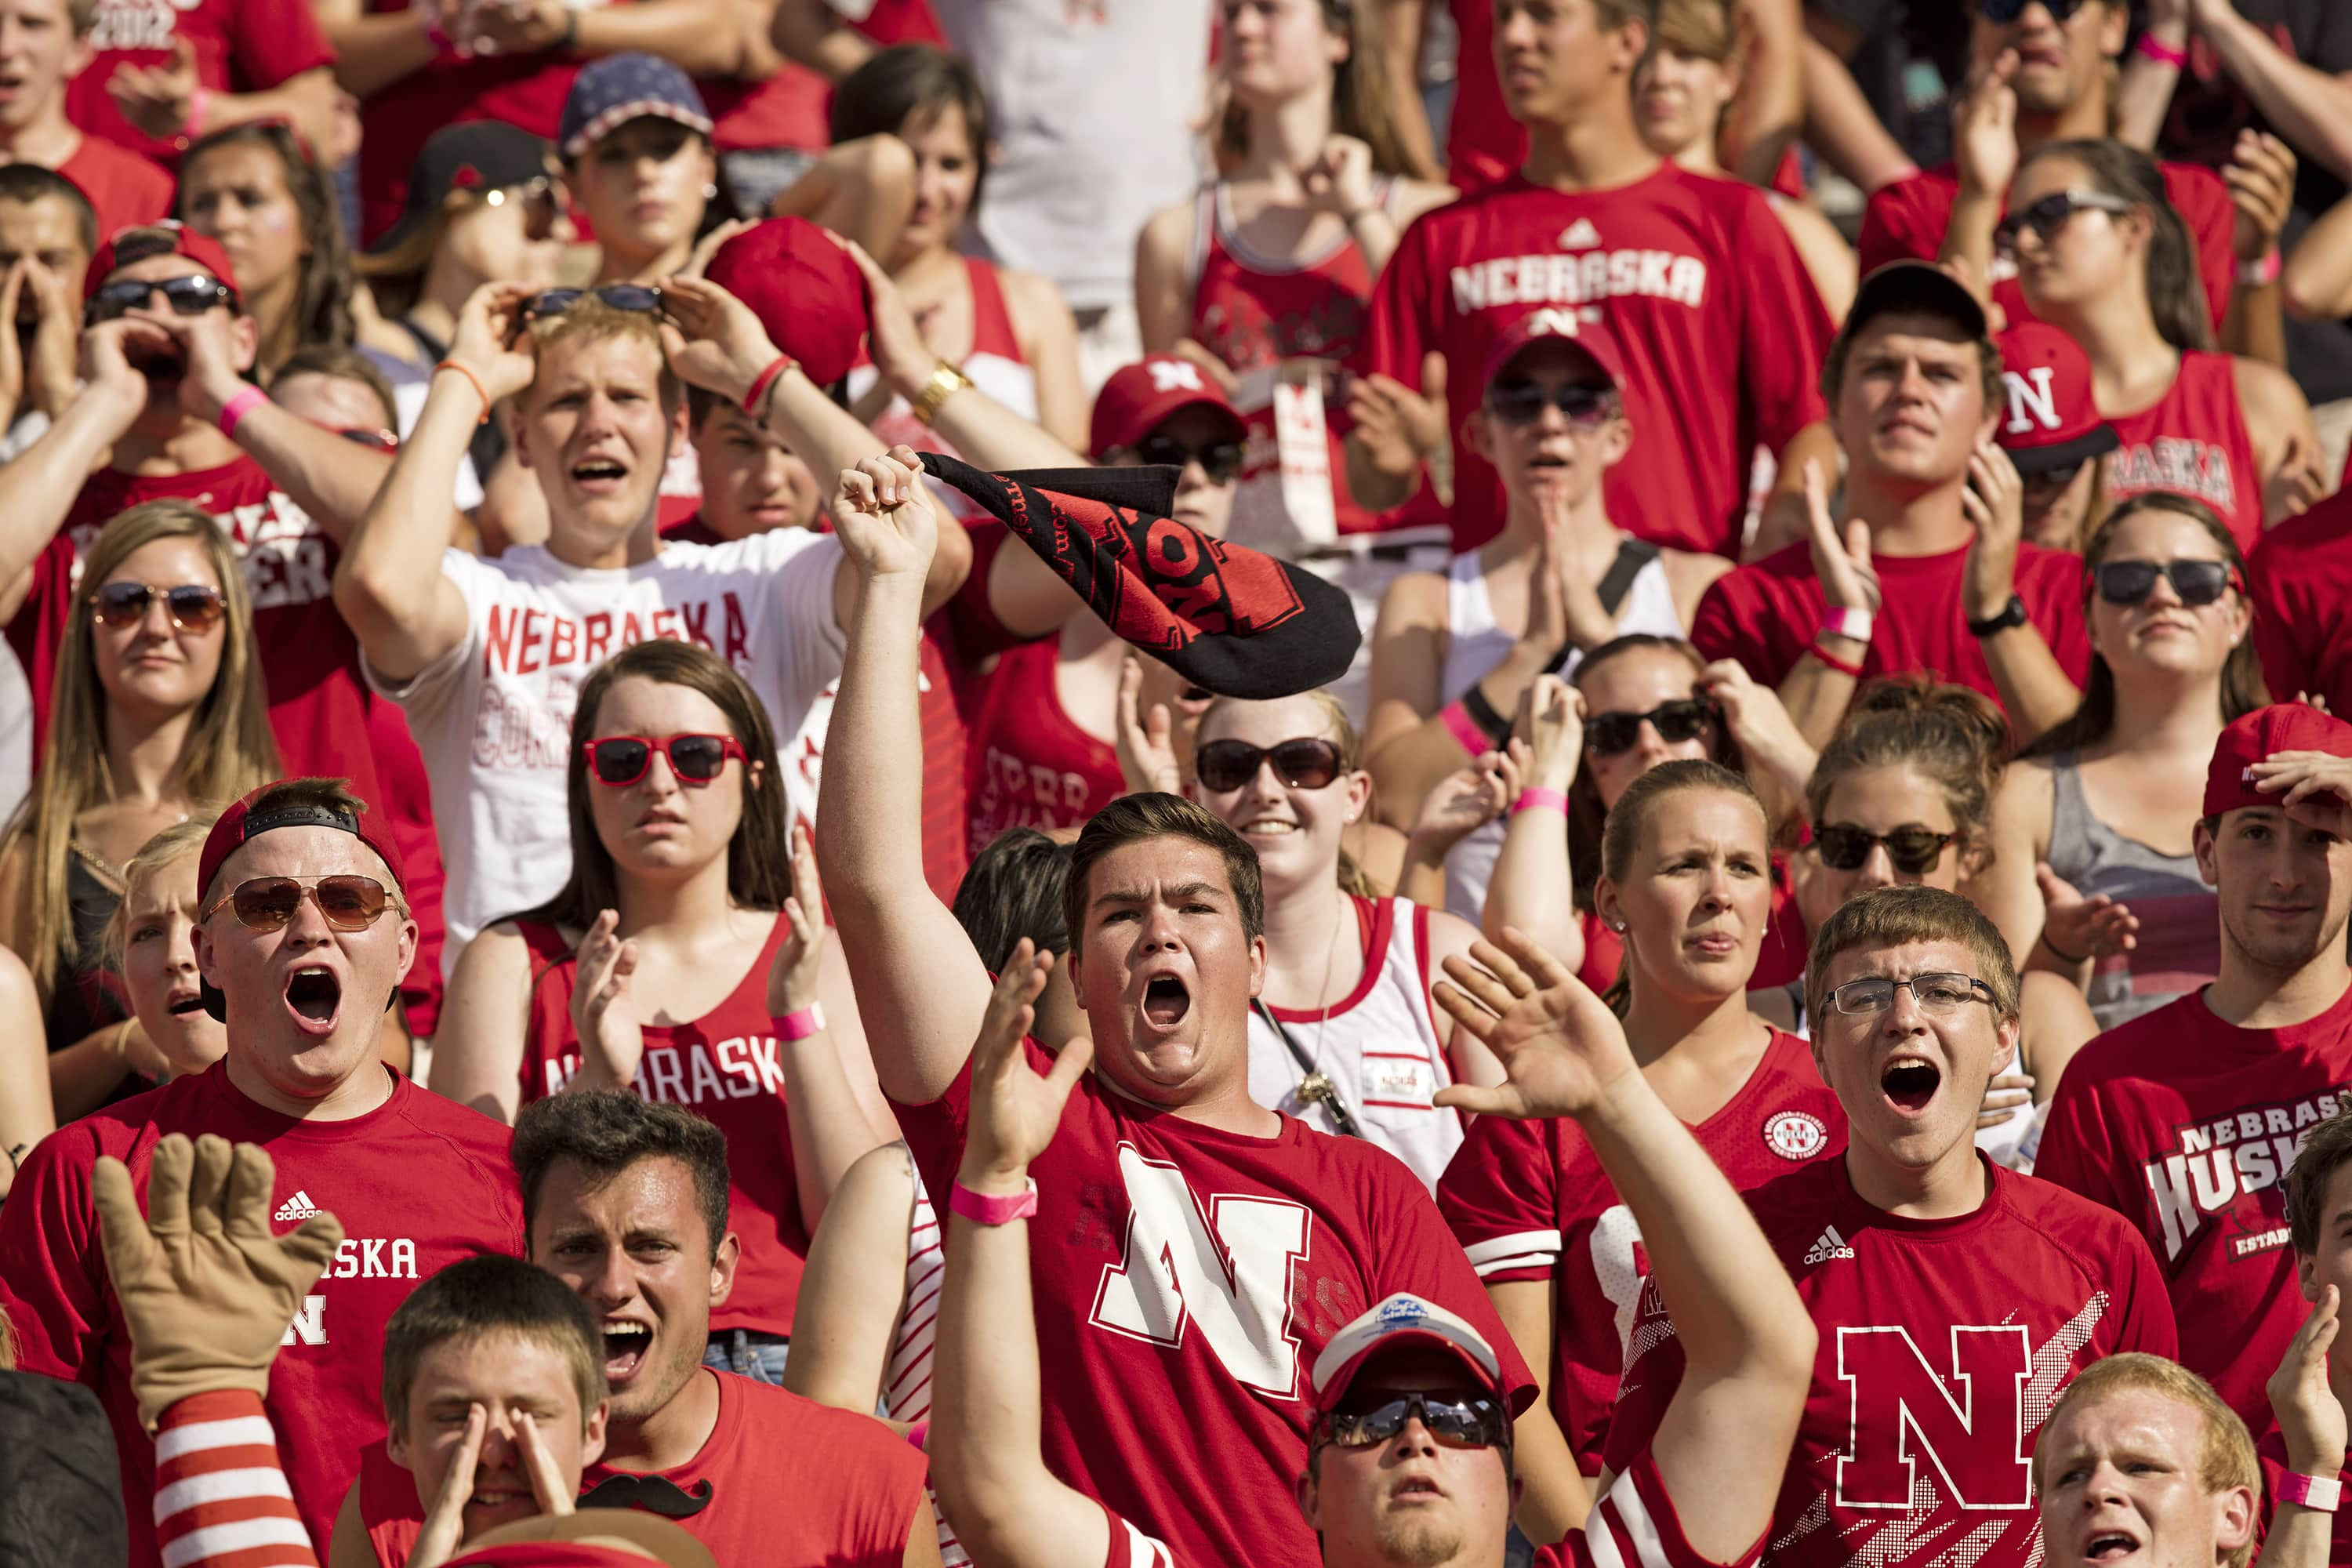 students cheering at a Husker game